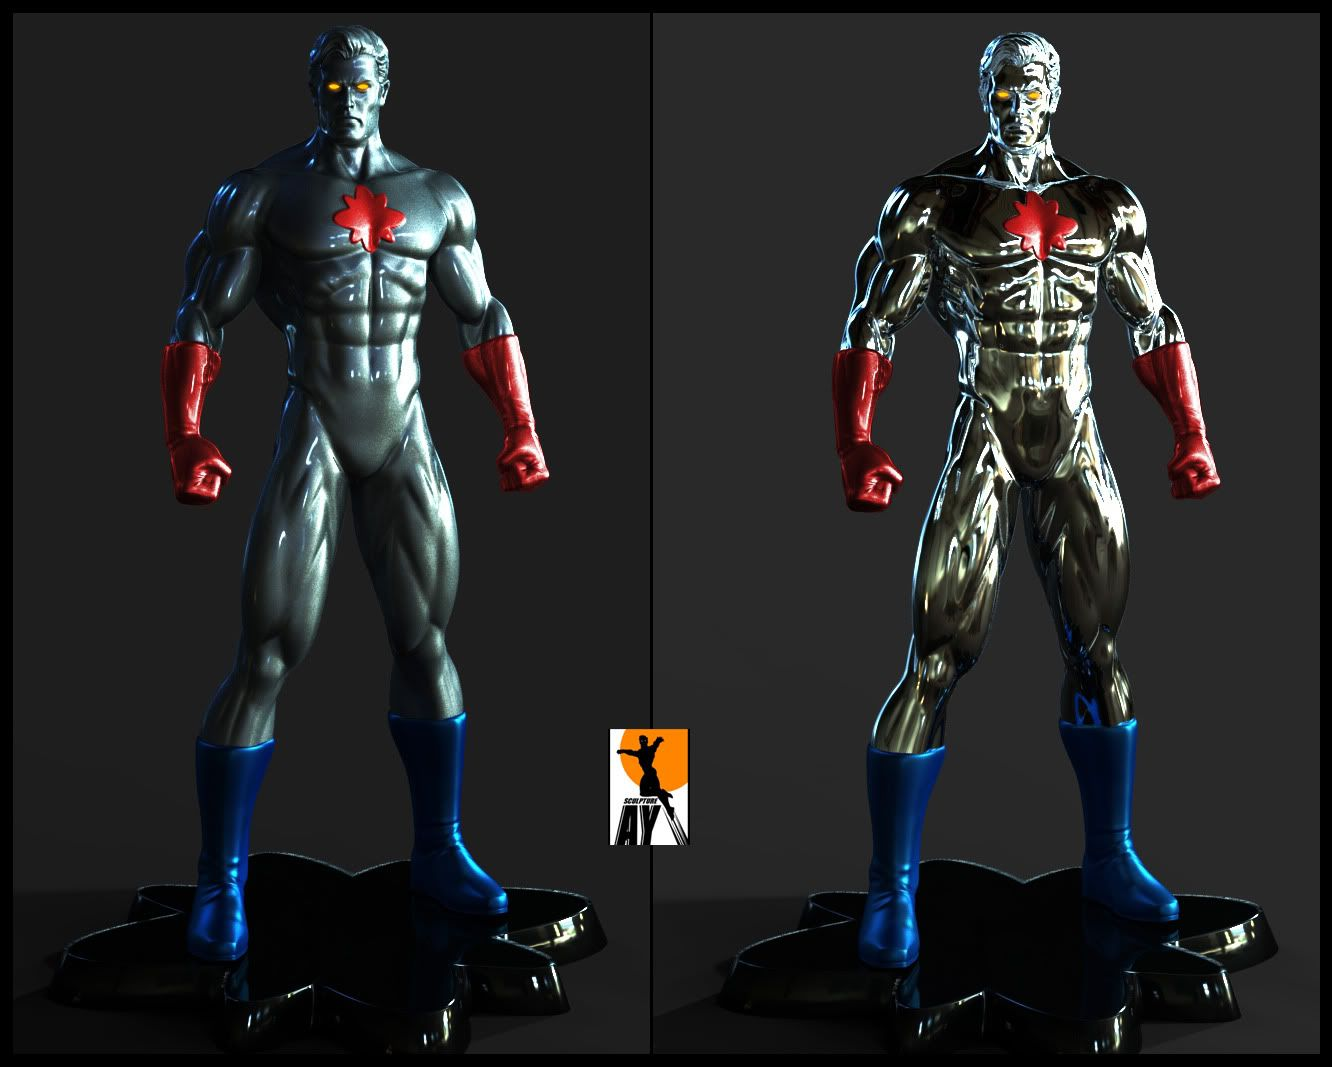 Les travaux de AY sculpture - Page 6 Captainatom